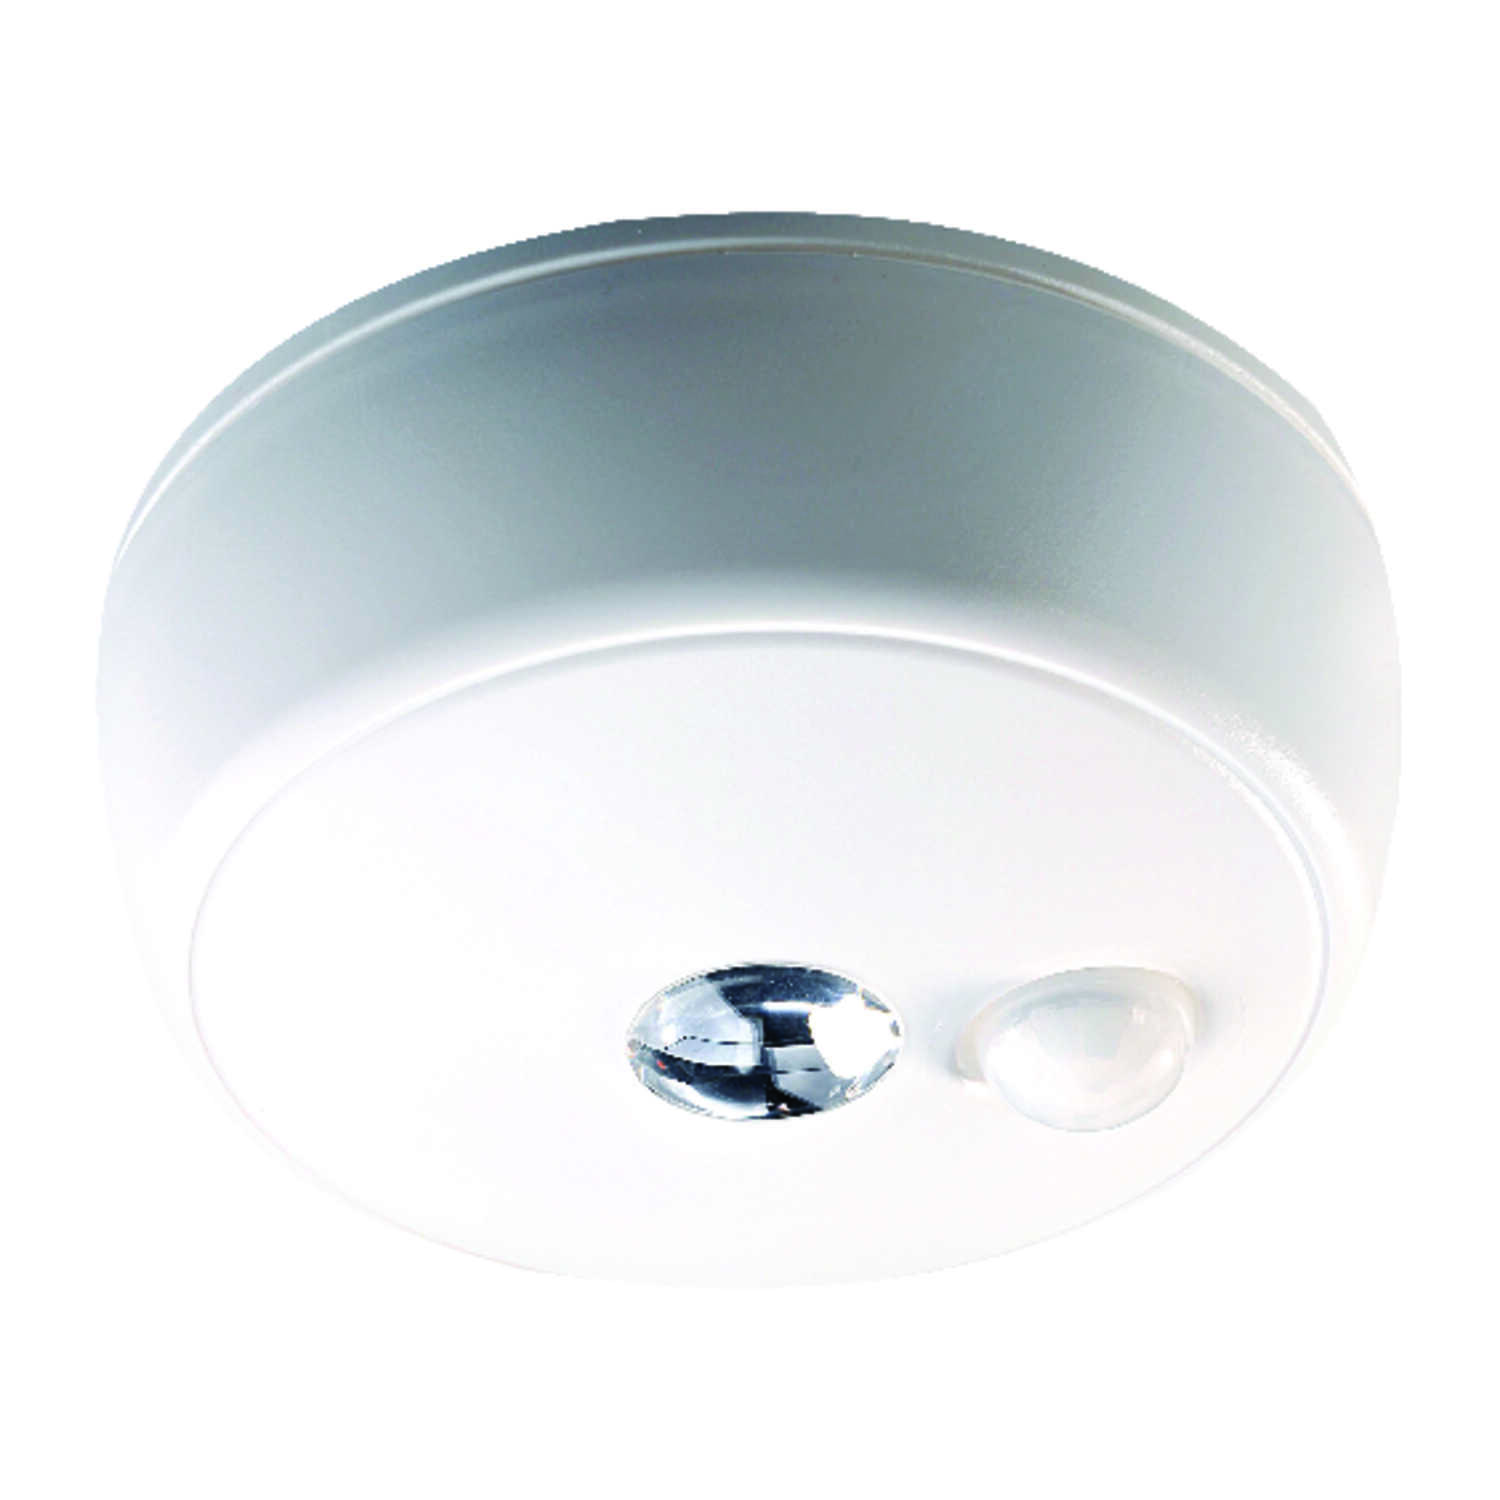 Mr. Beams  Metal  Battery Powered  Ceiling Light  Motion-Sensing  White